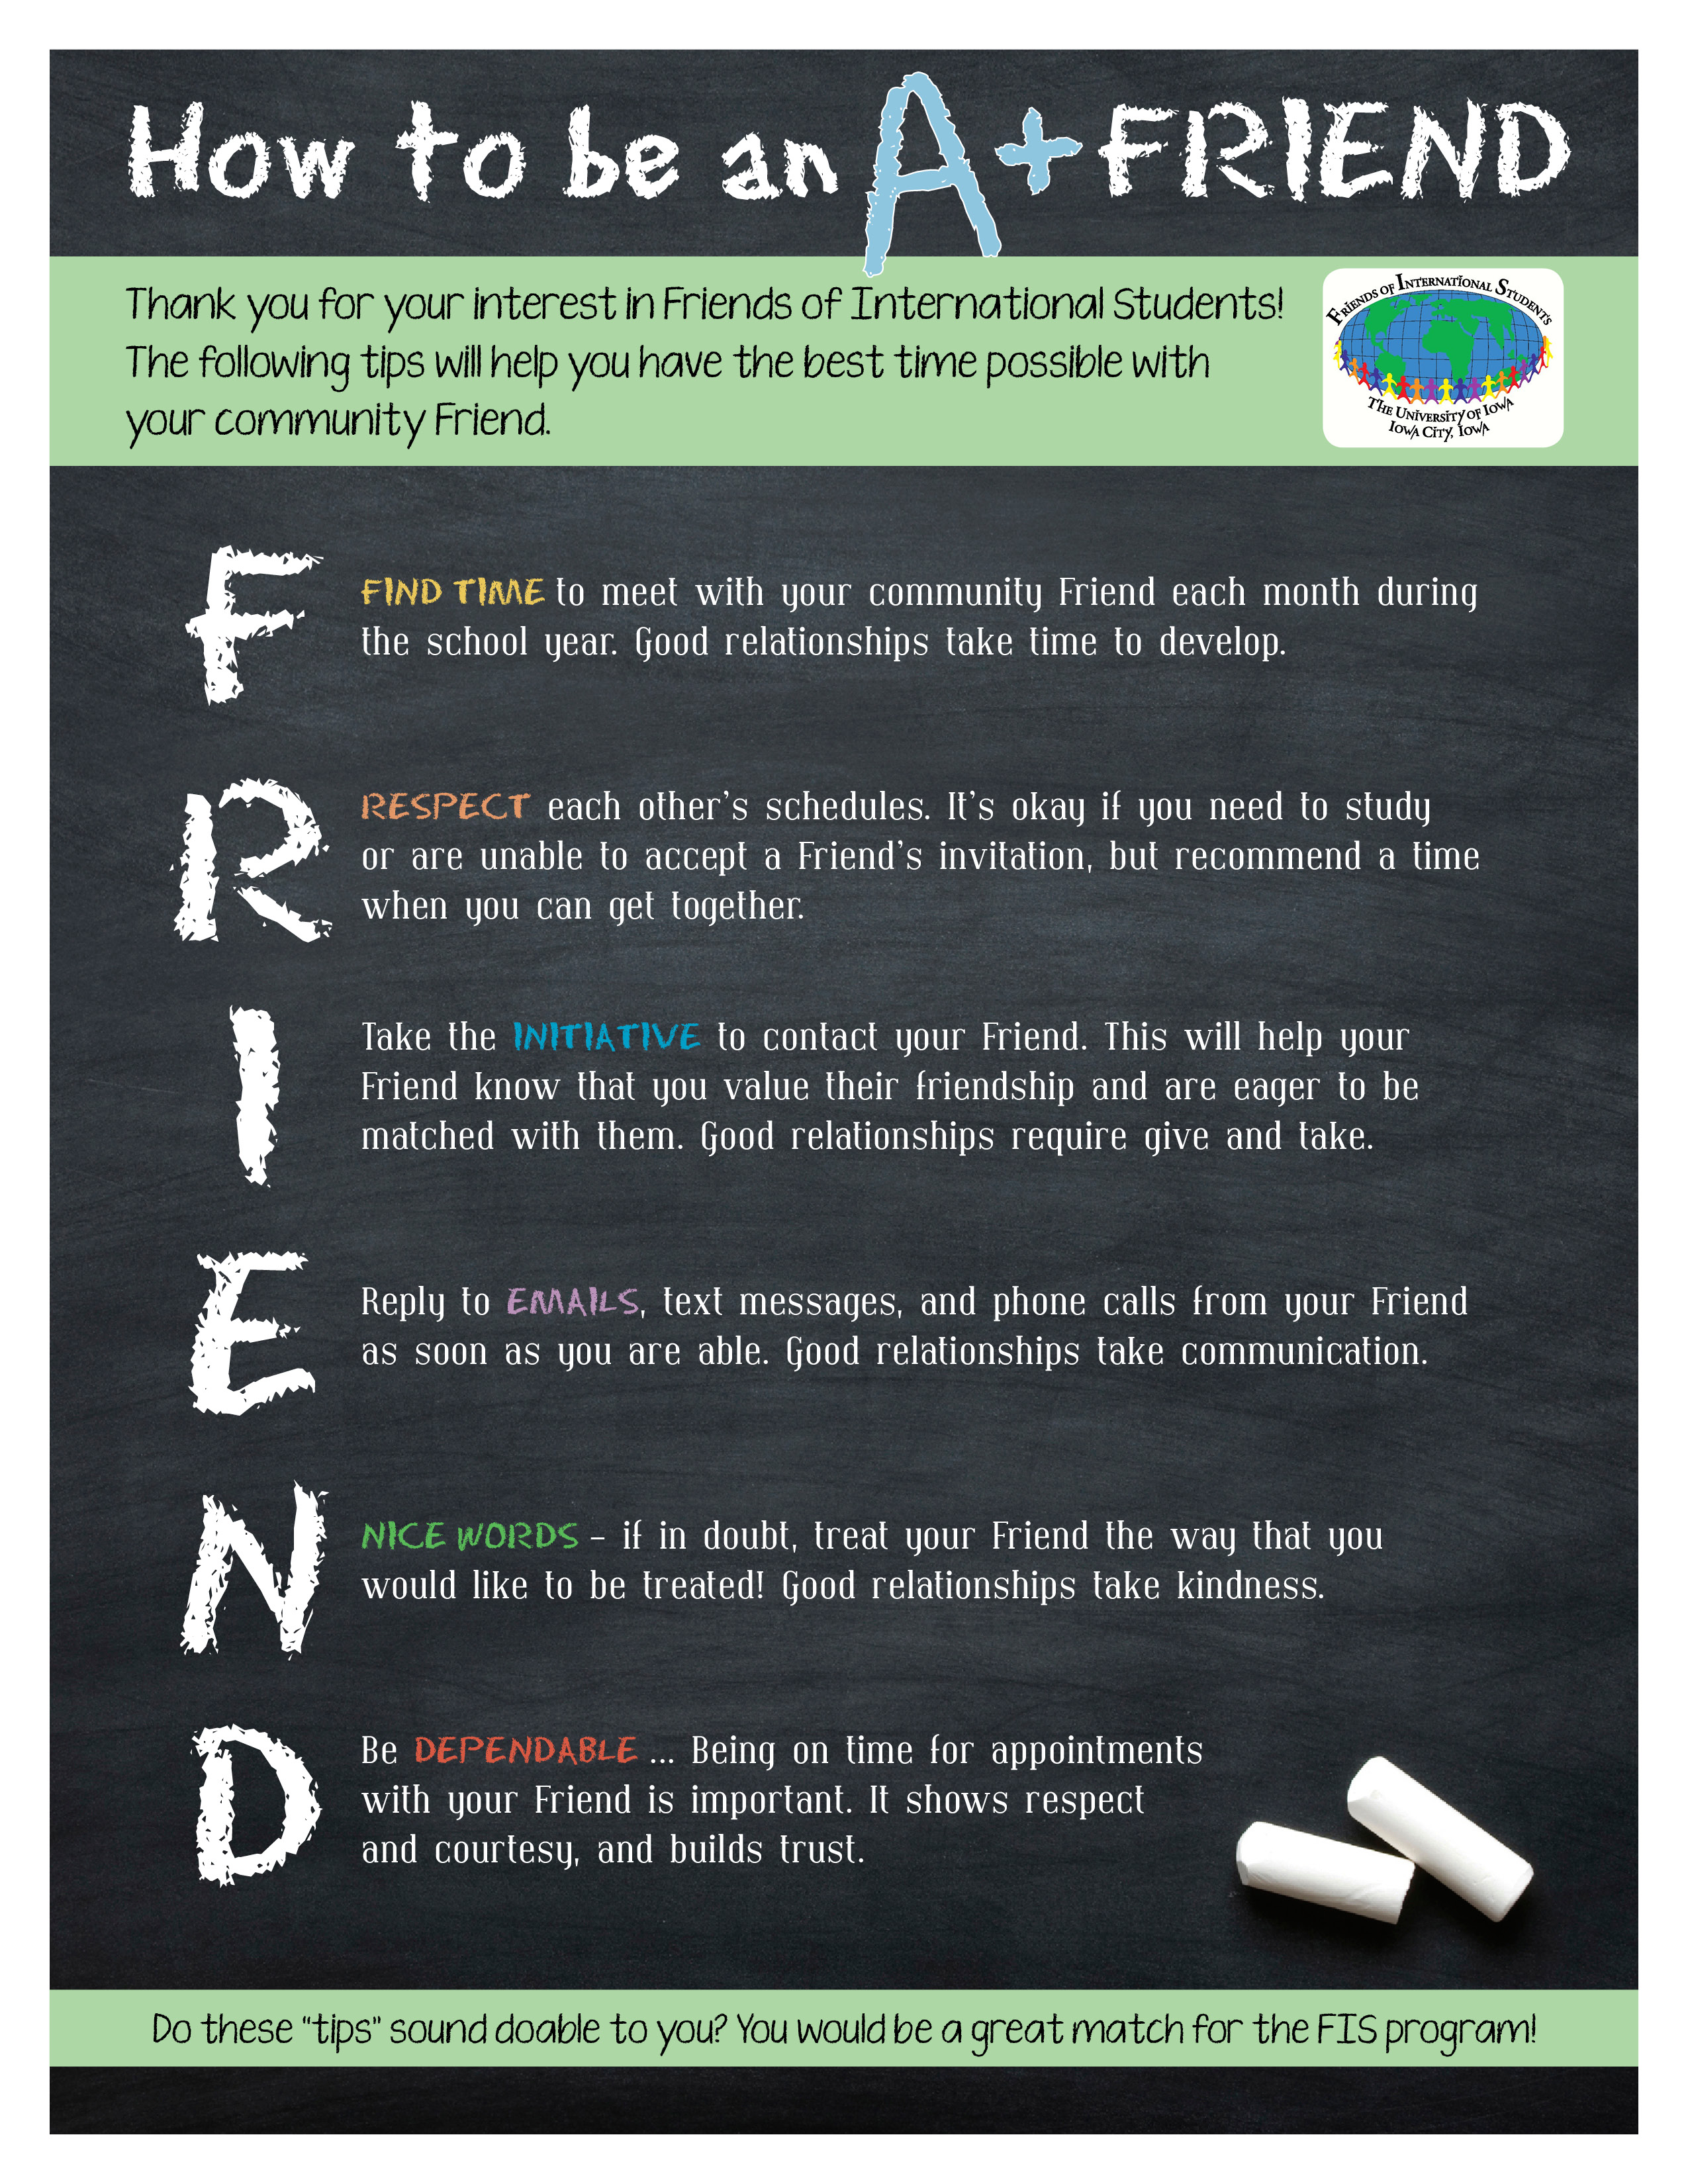 how to be an a friend friends of international students